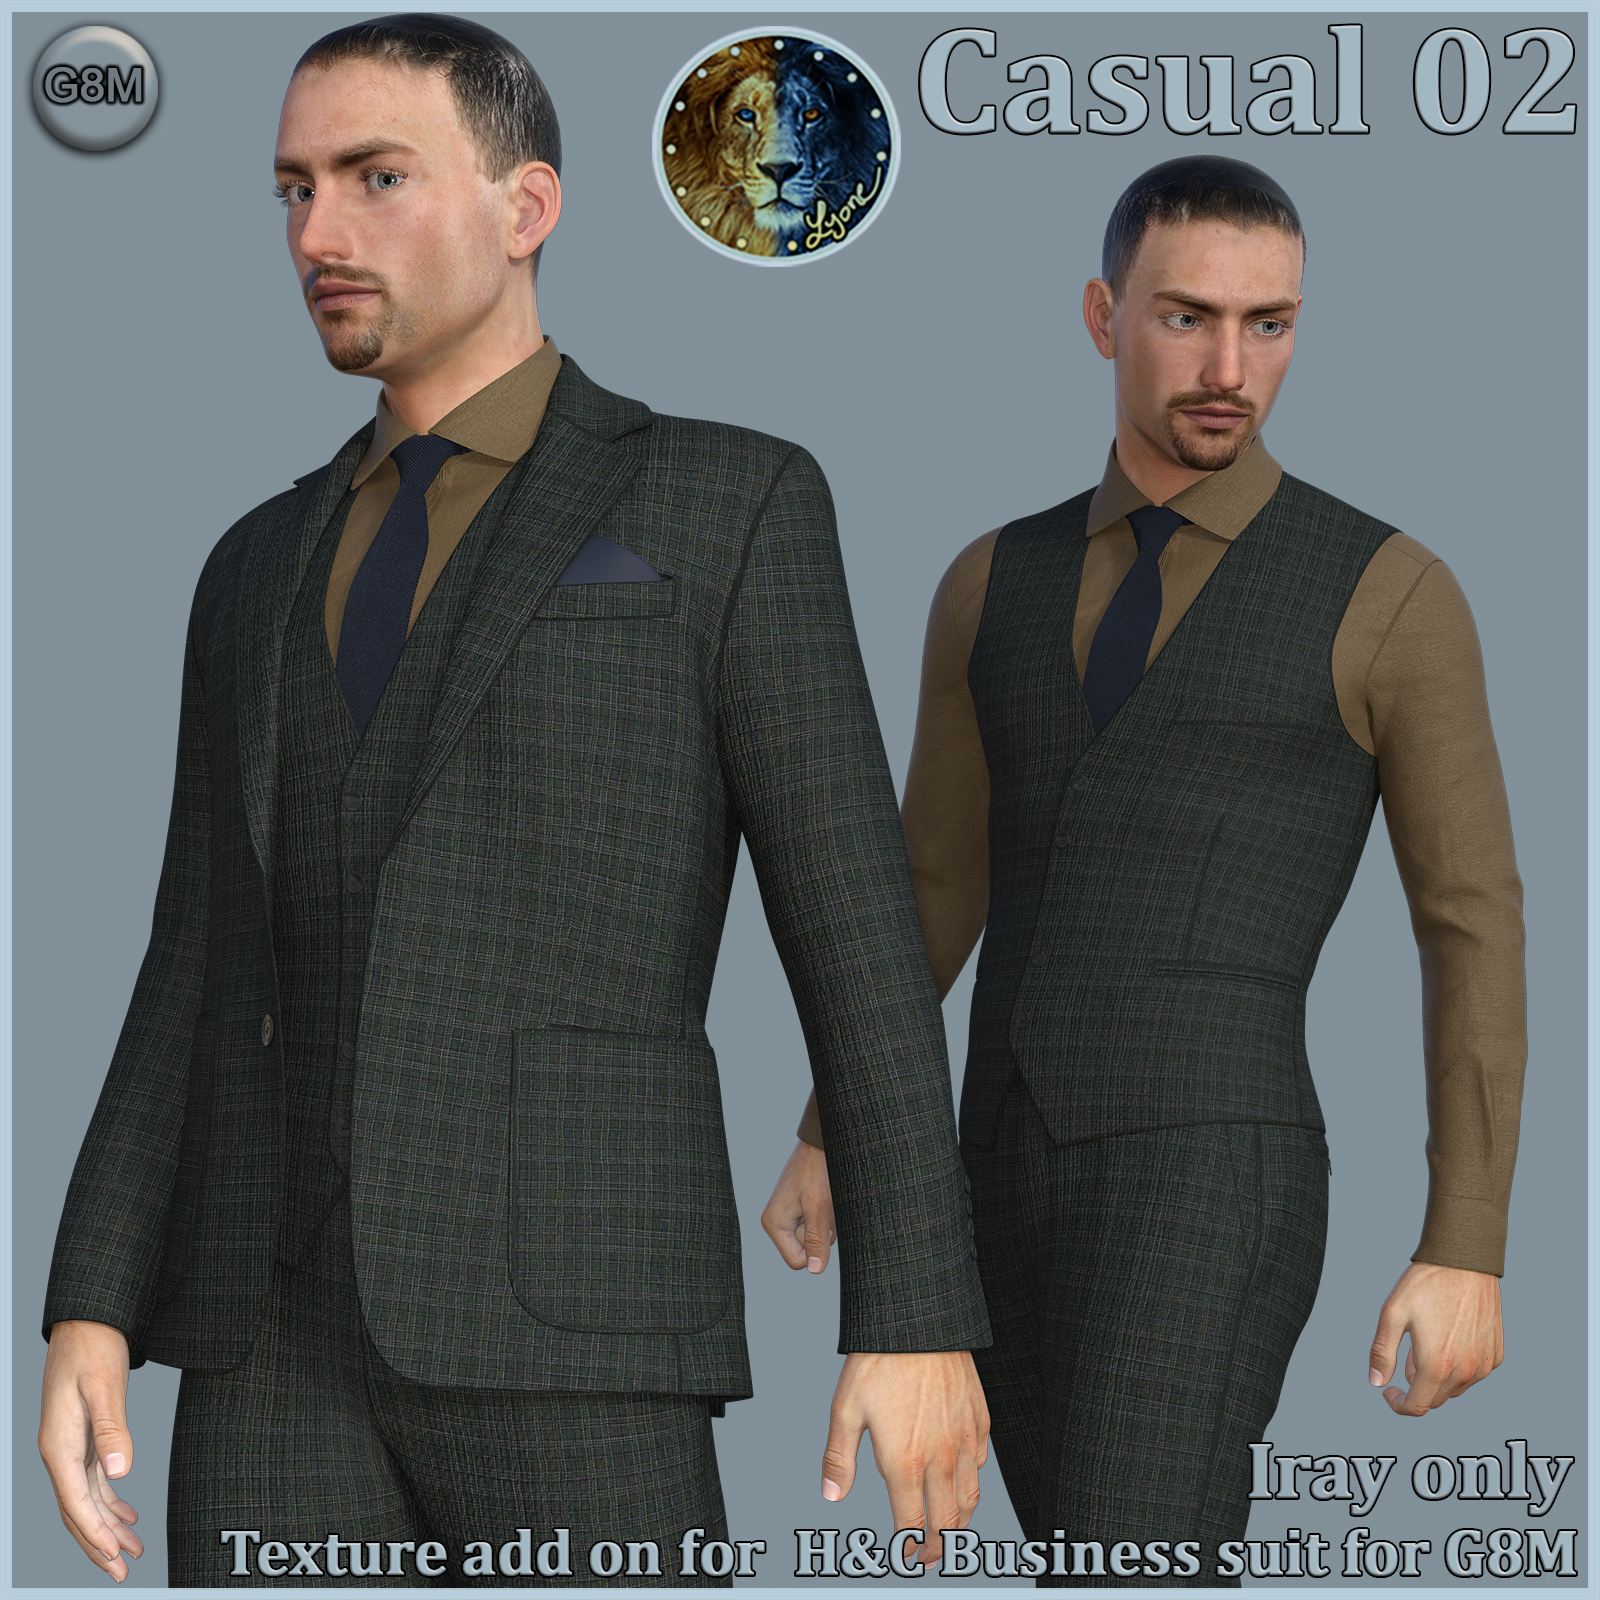 Casual 02 for H and C Business Suit for G8M